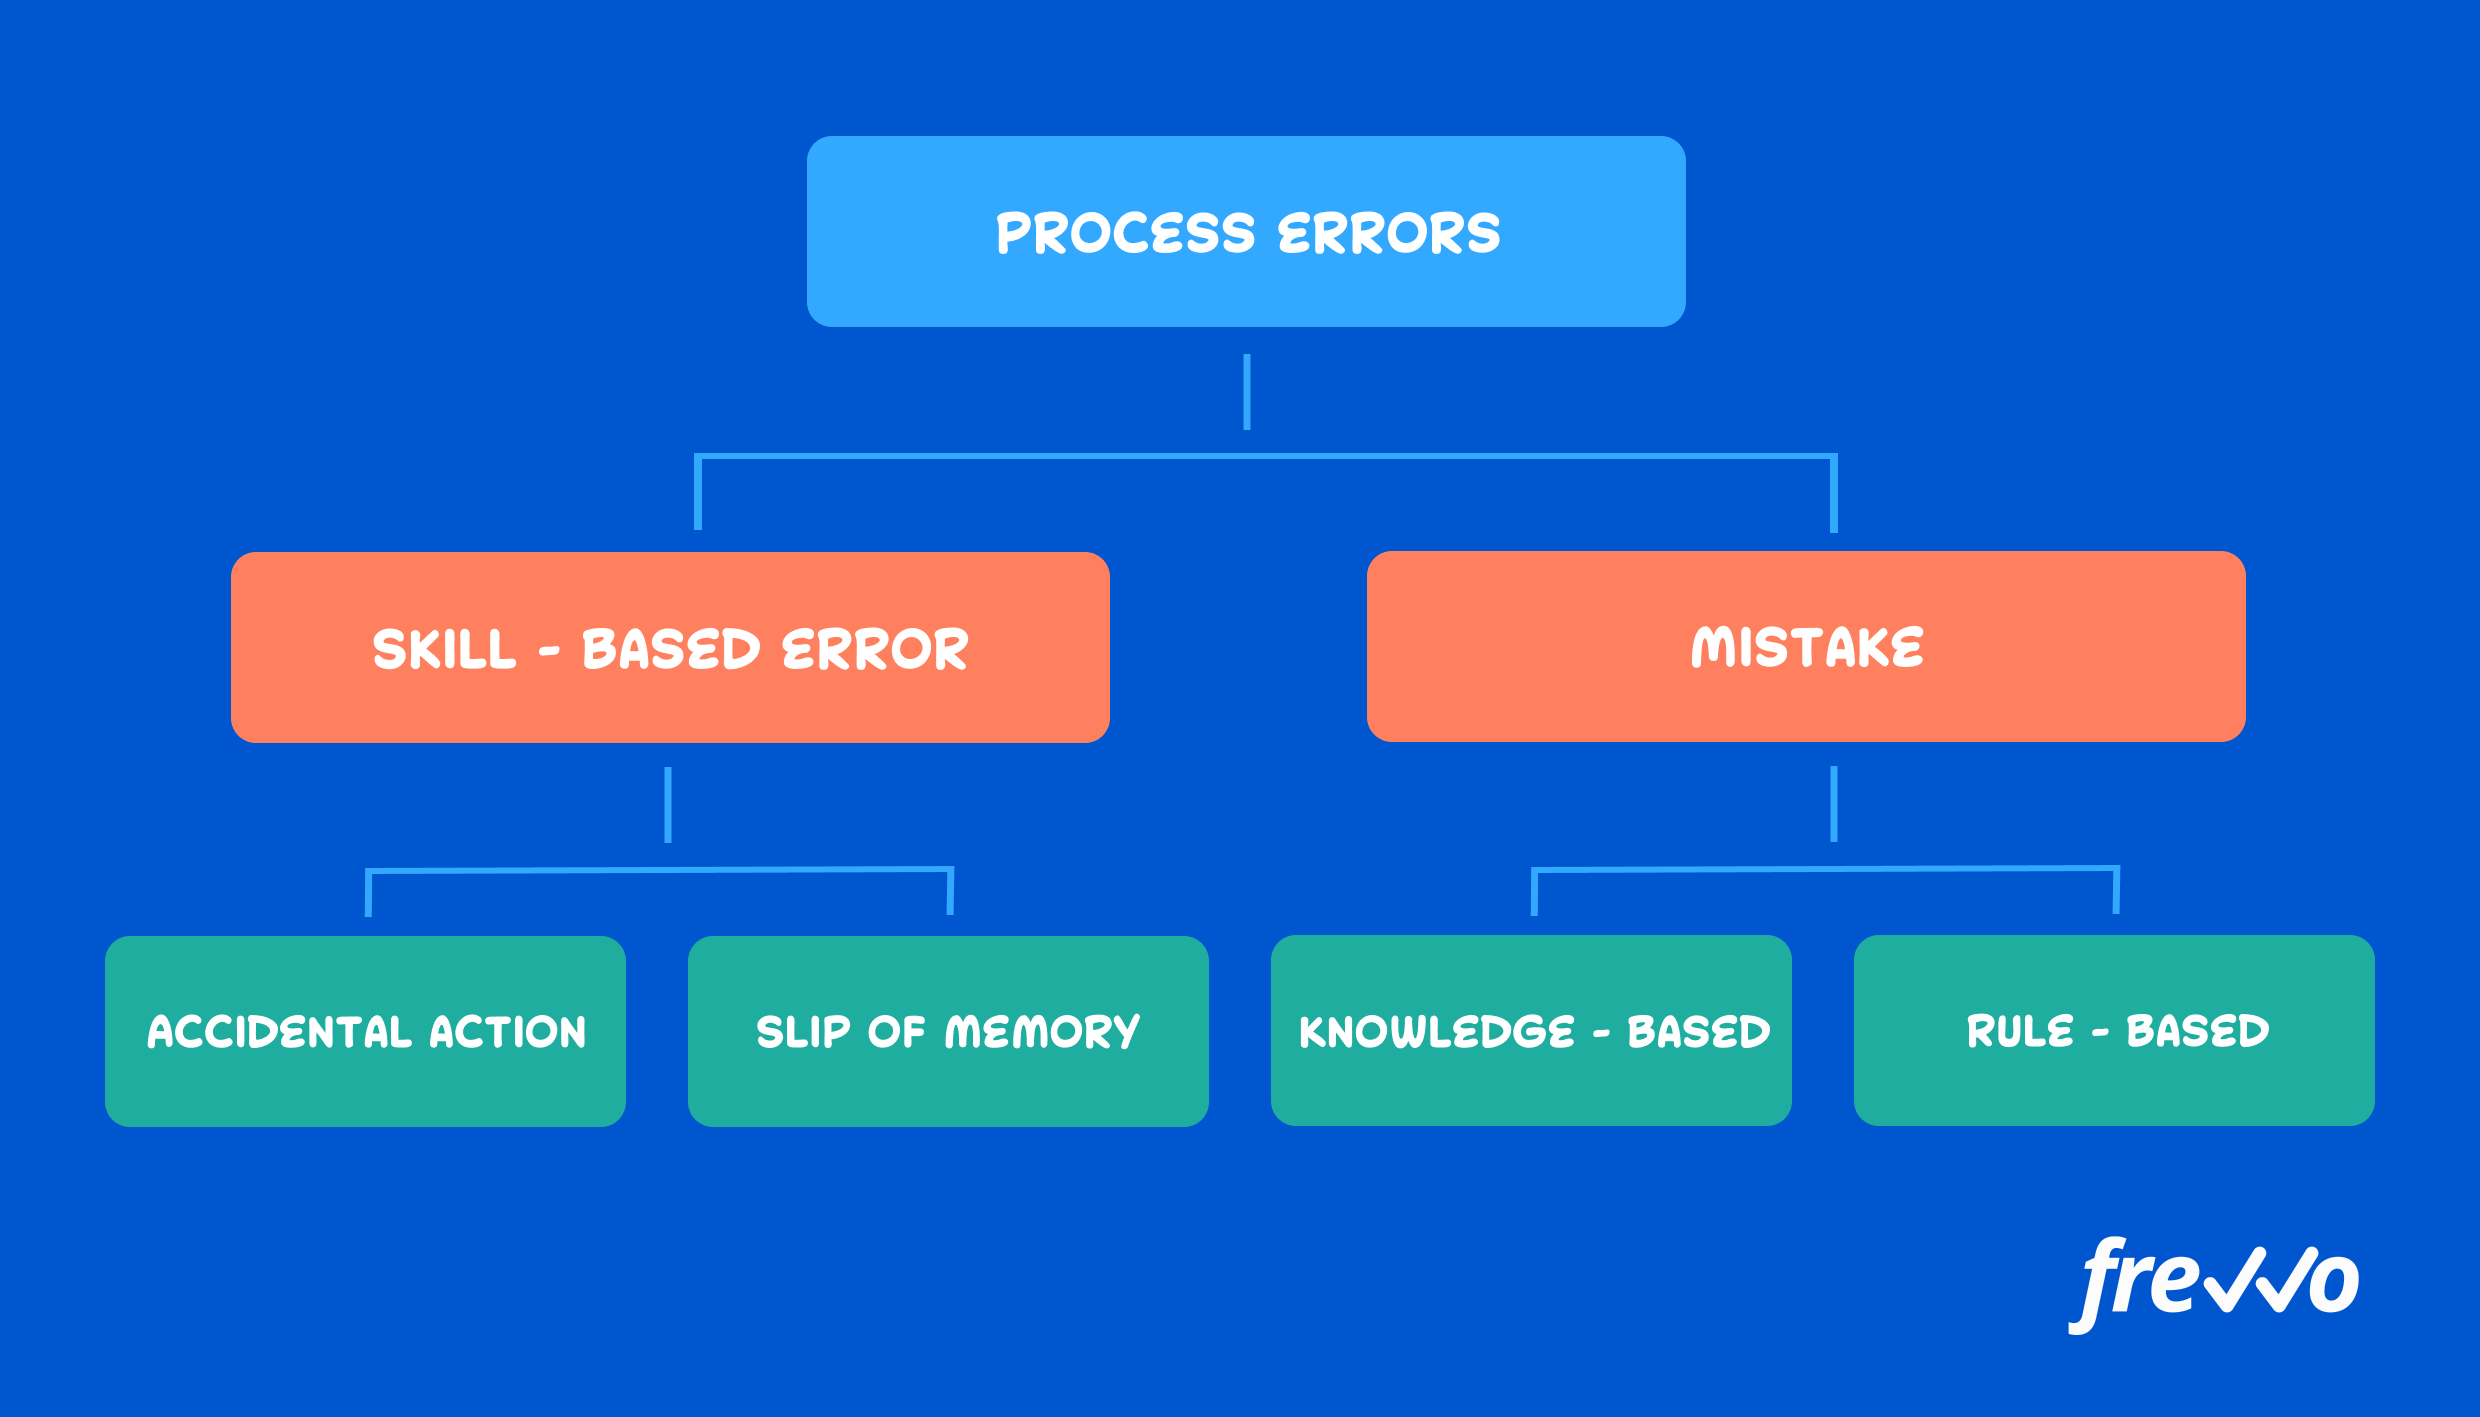 Different types of errors in the process